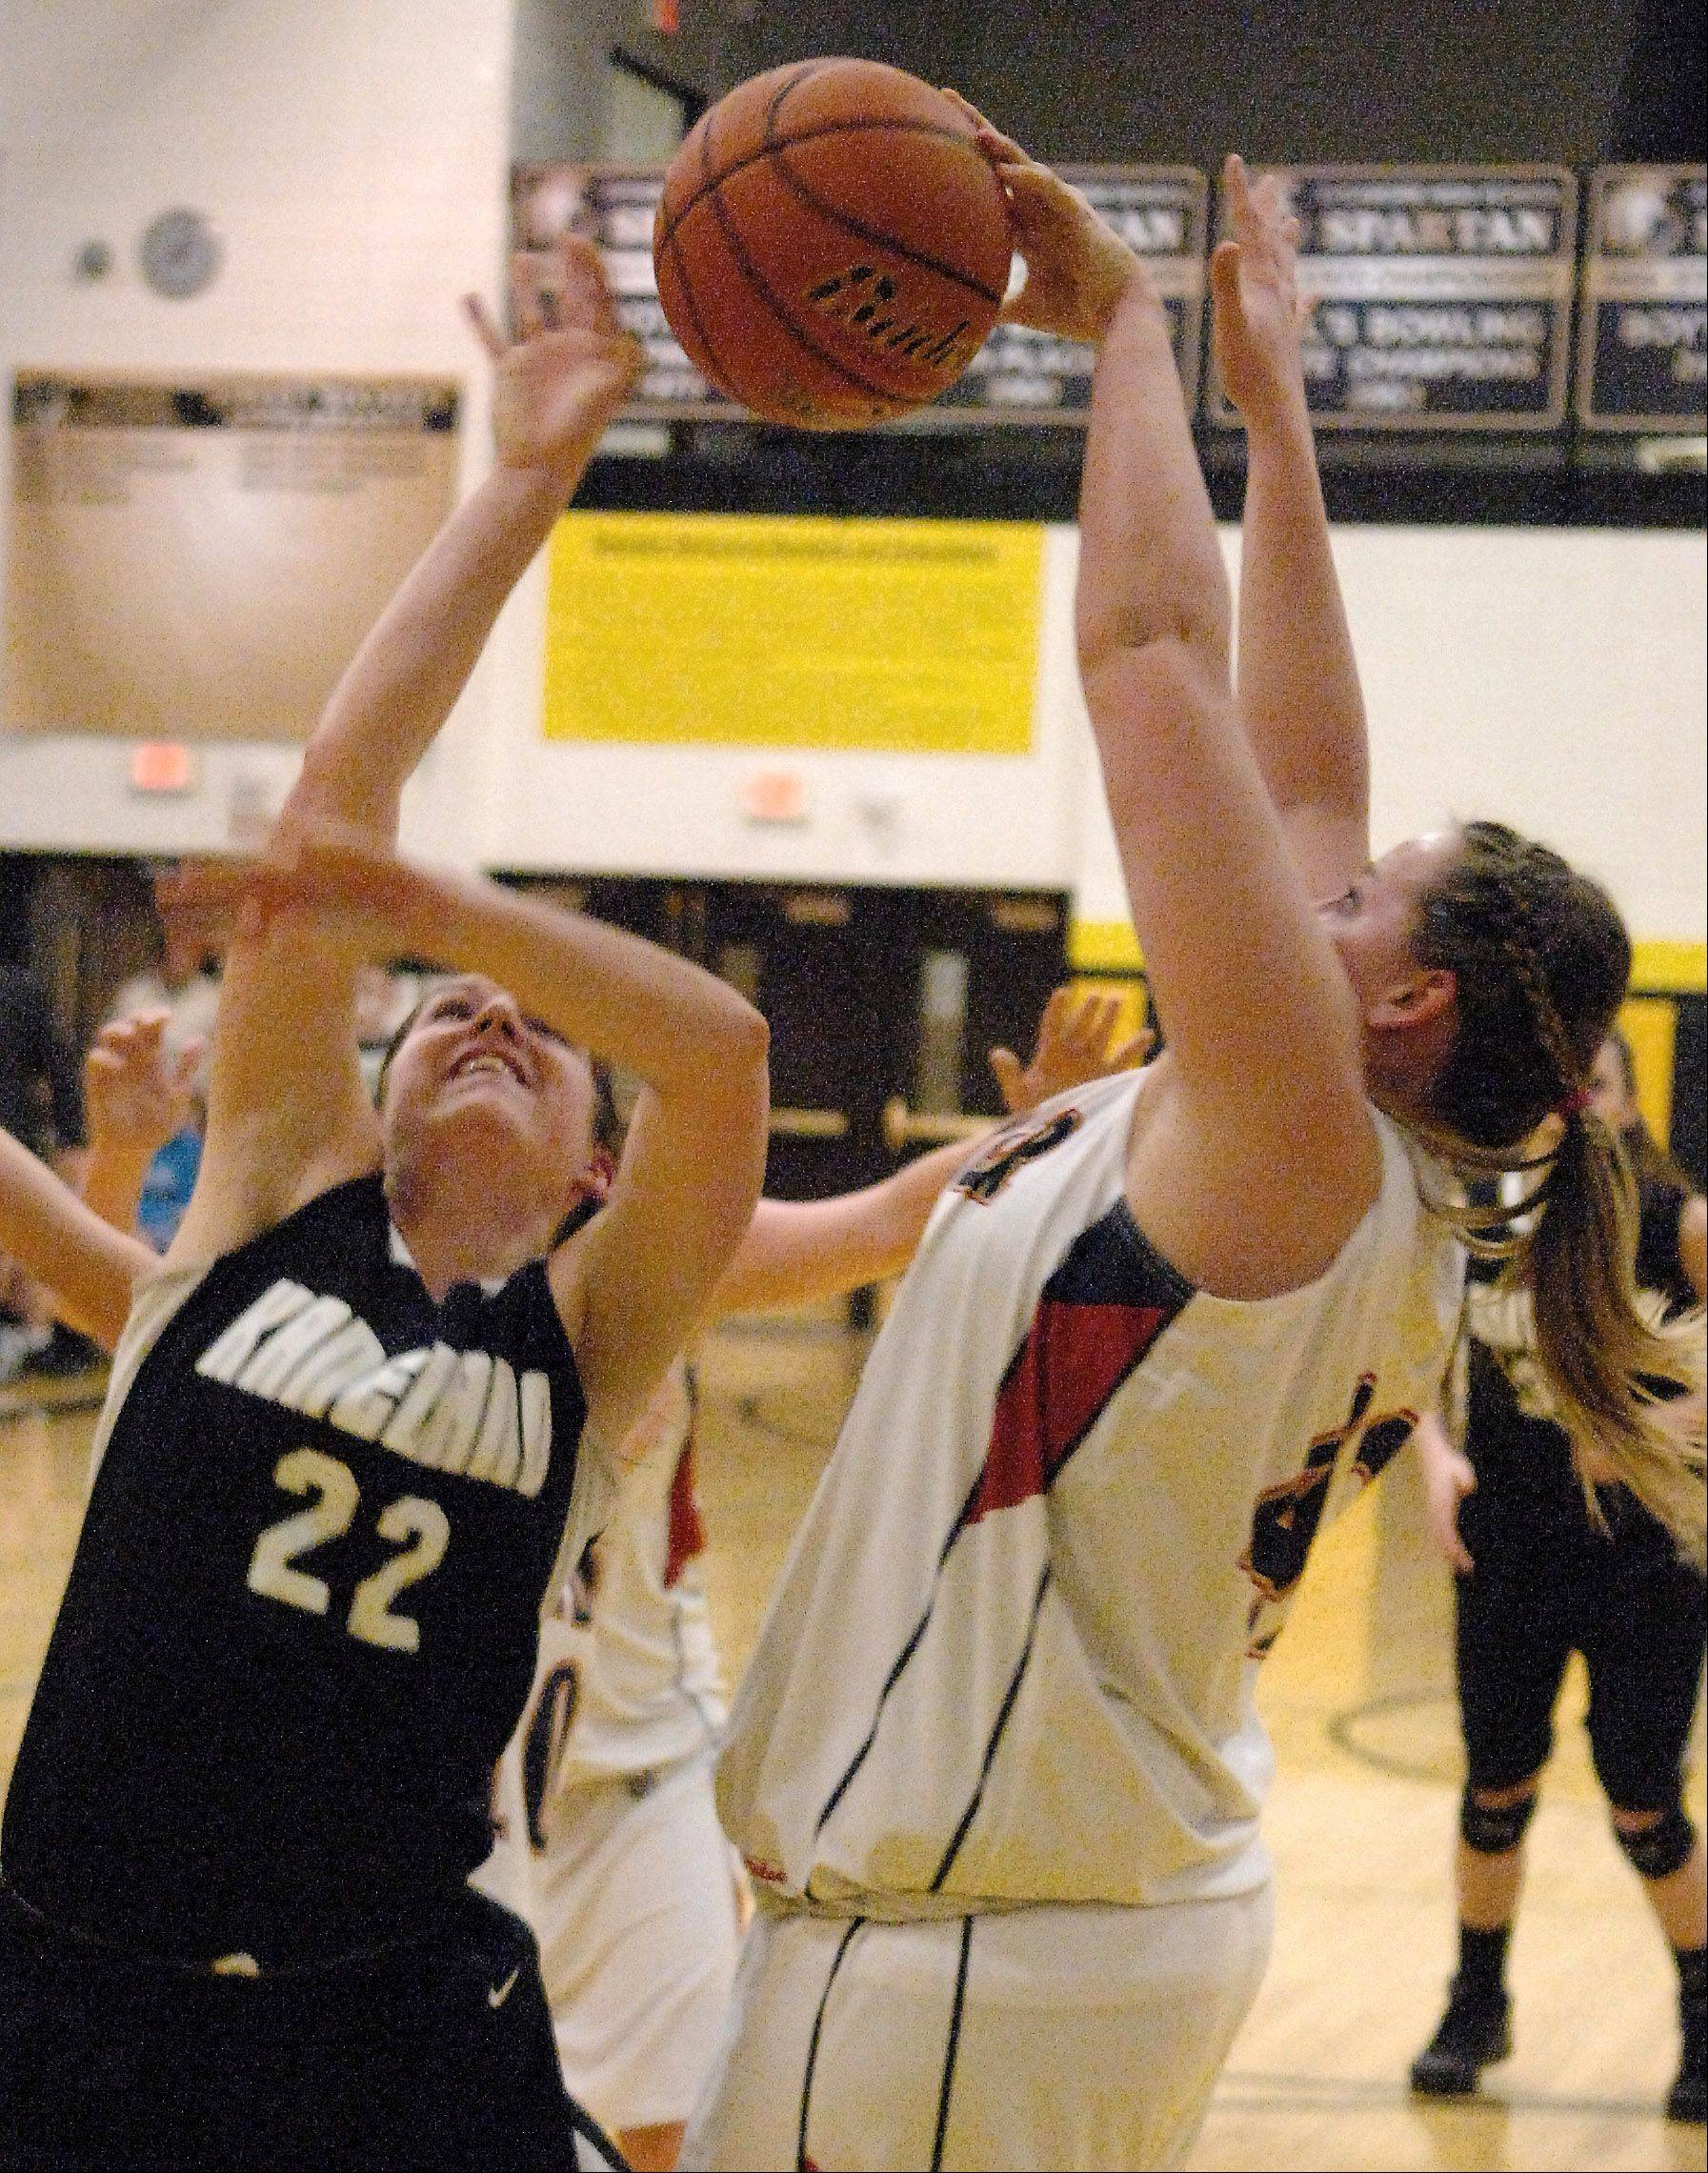 Kaneland's Brooke Harner has her shot blocked by Belvidere North's Katie Dovenmuehle.